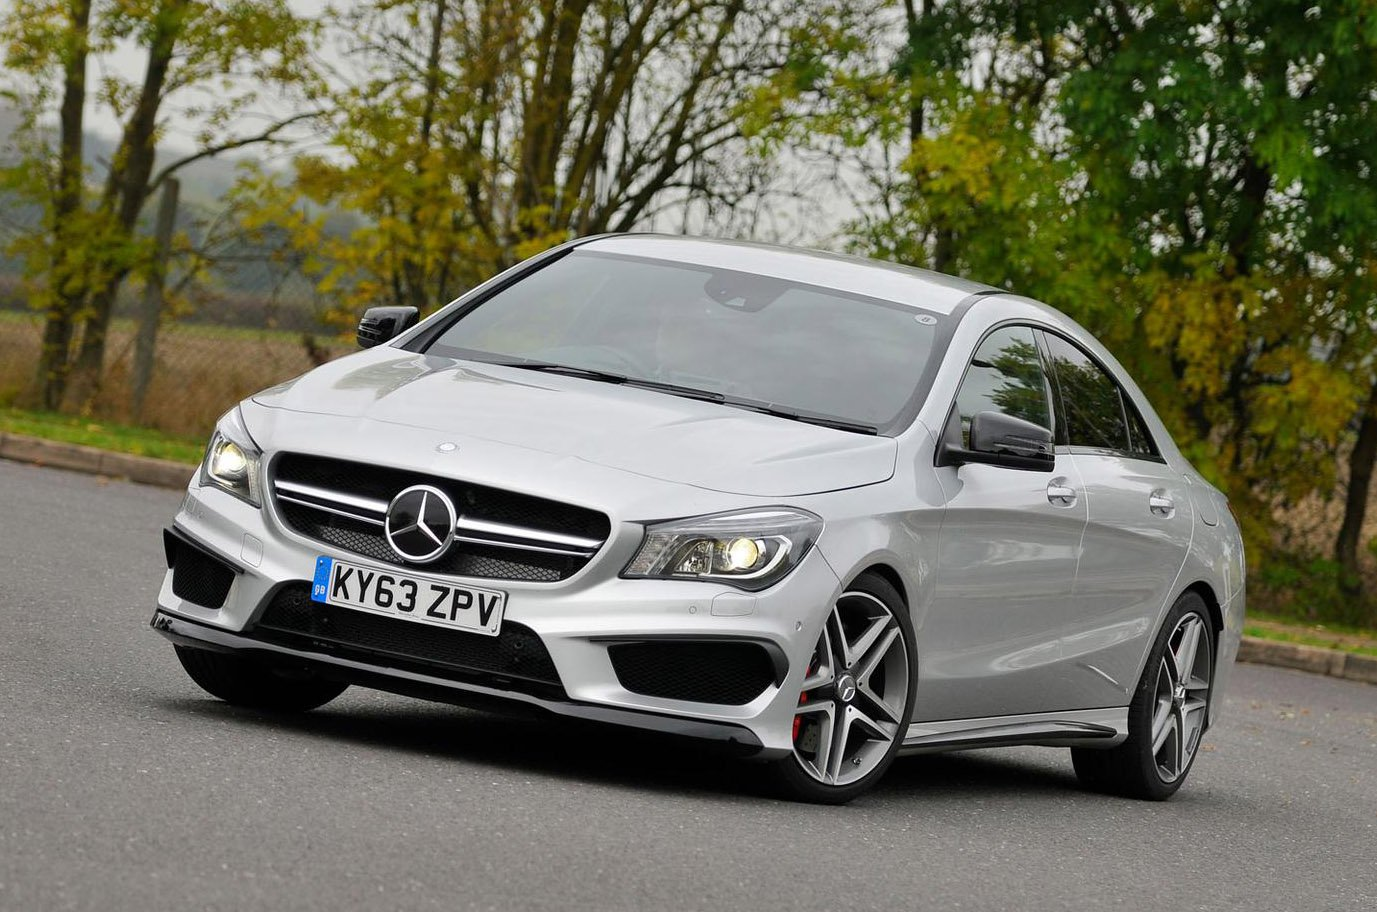 Mercedes CLA front - 63 plate